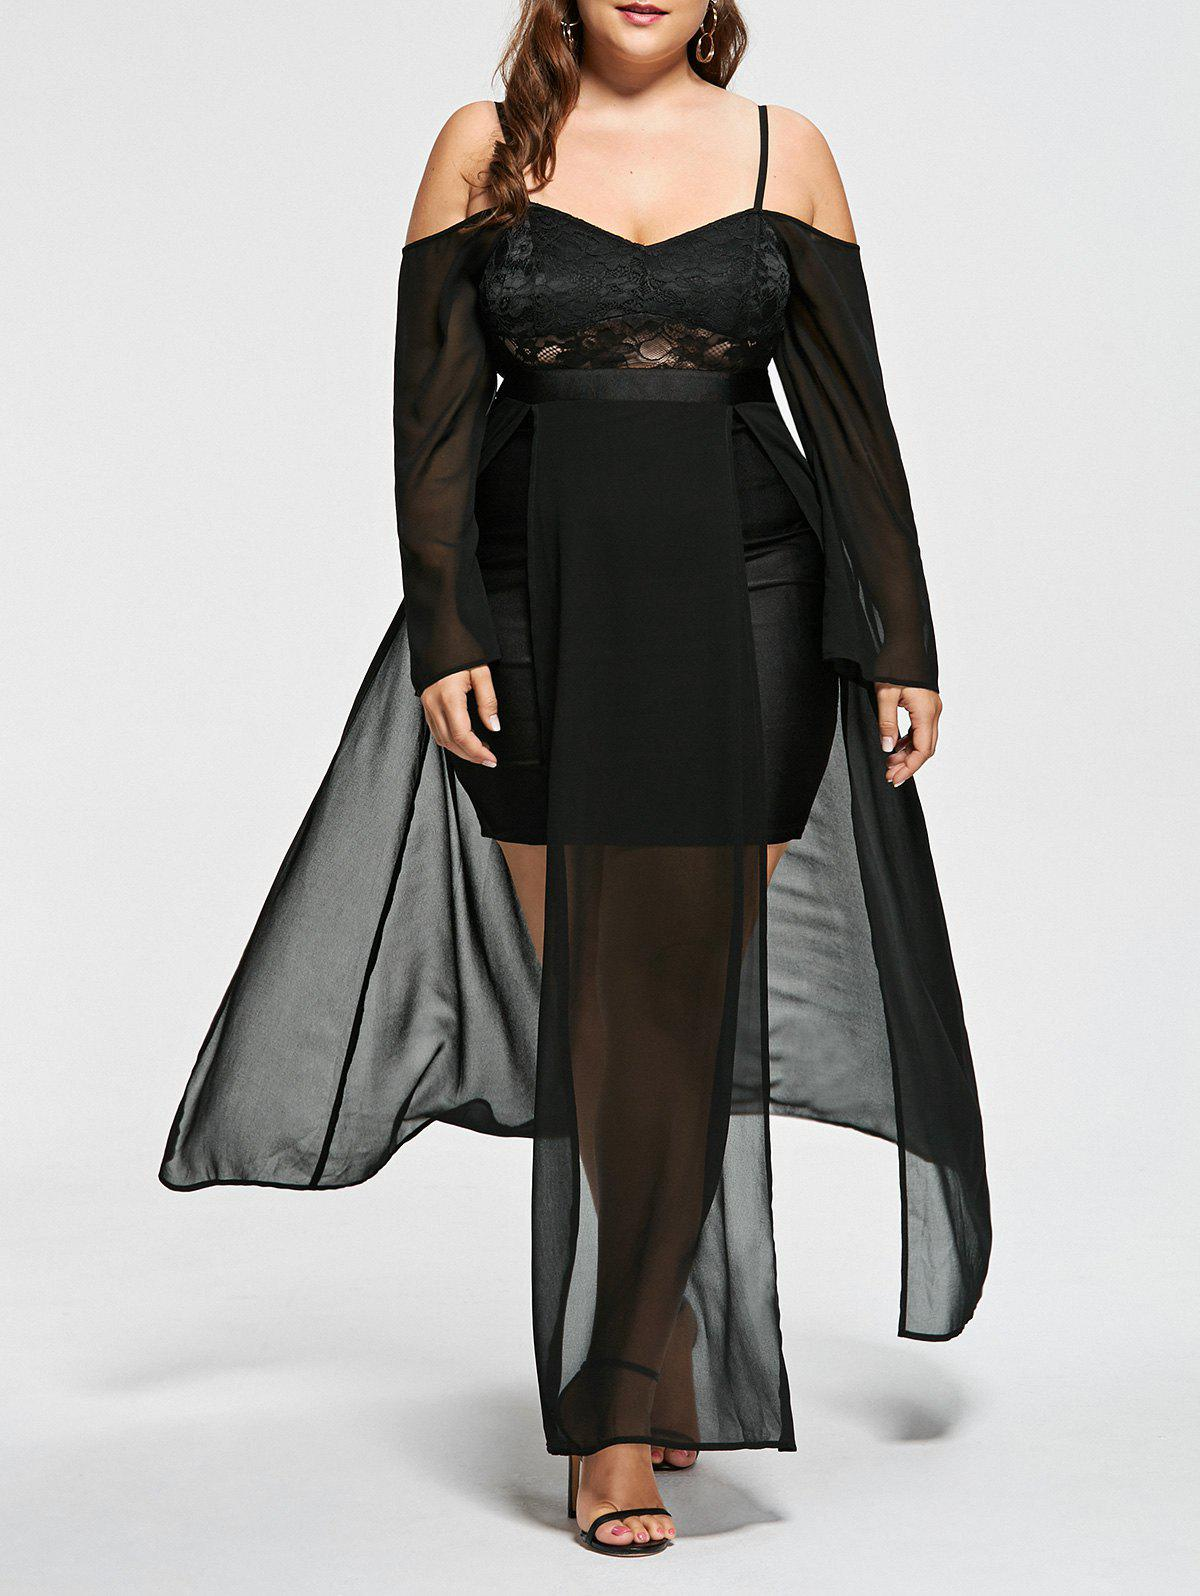 Plus Size Cold Shoulder Flowing Evening DressWOMEN<br><br>Size: 5XL; Color: BLACK; Style: Club; Material: Polyester; Silhouette: A-Line; Dresses Length: Mid-Calf; Neckline: Spaghetti Strap; Sleeve Length: Long Sleeves; Embellishment: Lace; Pattern Type: Solid Color; With Belt: No; Season: Fall,Spring,Summer; Weight: 0.4500kg; Package Contents: 1 x Dress;